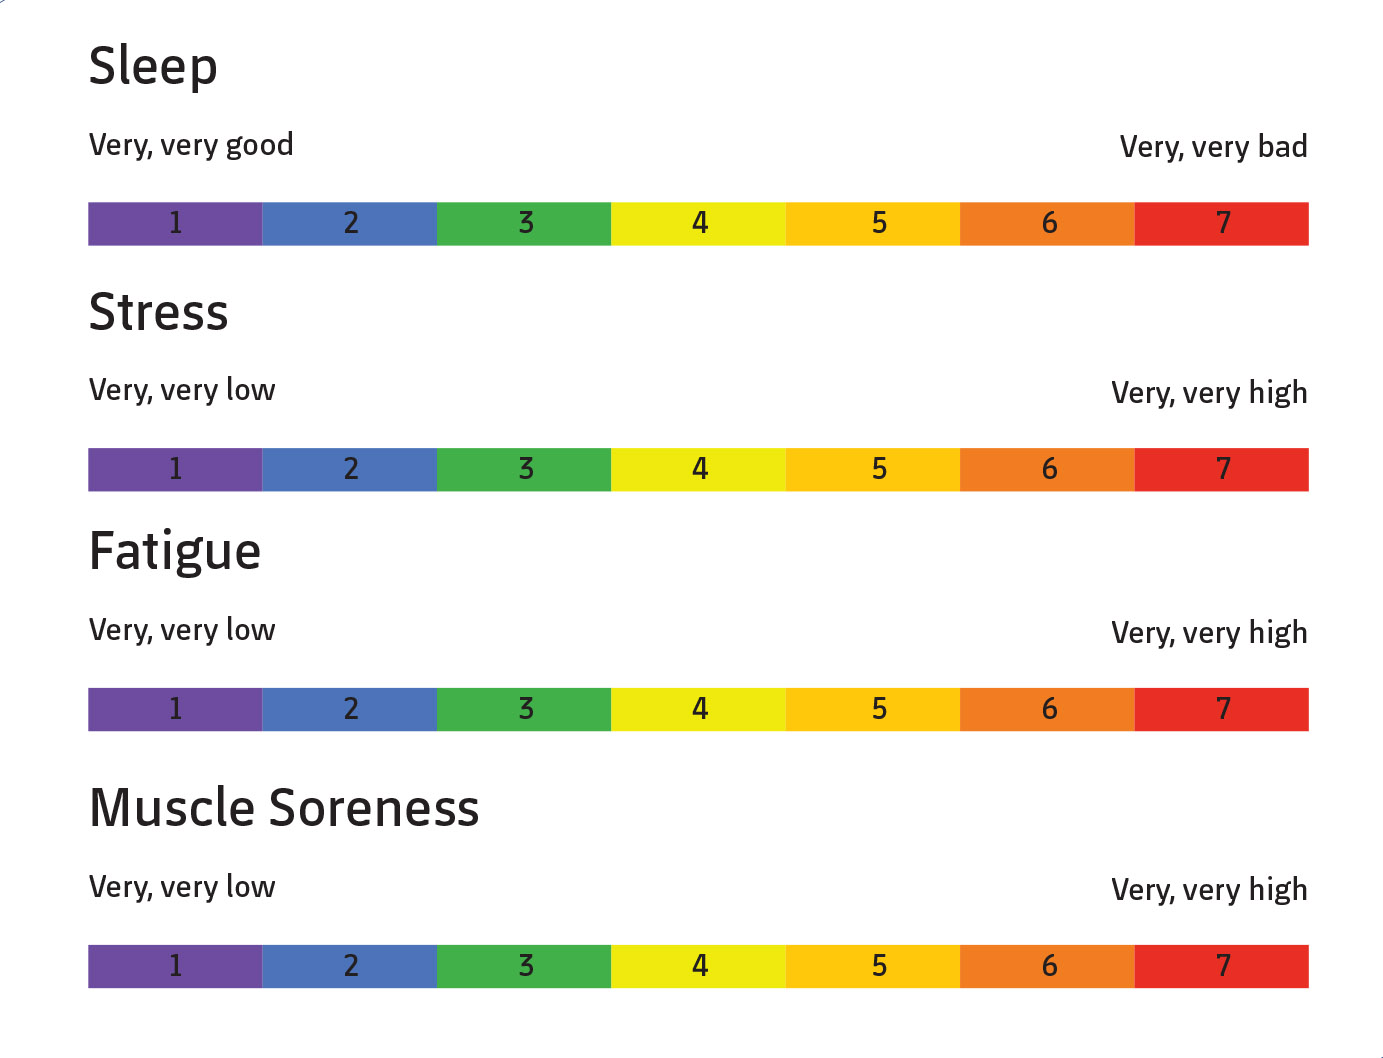 Figure 2. Wellness questionnaire shared by FC Barcelona (taken from Hooper & Mackinnon, 1995).